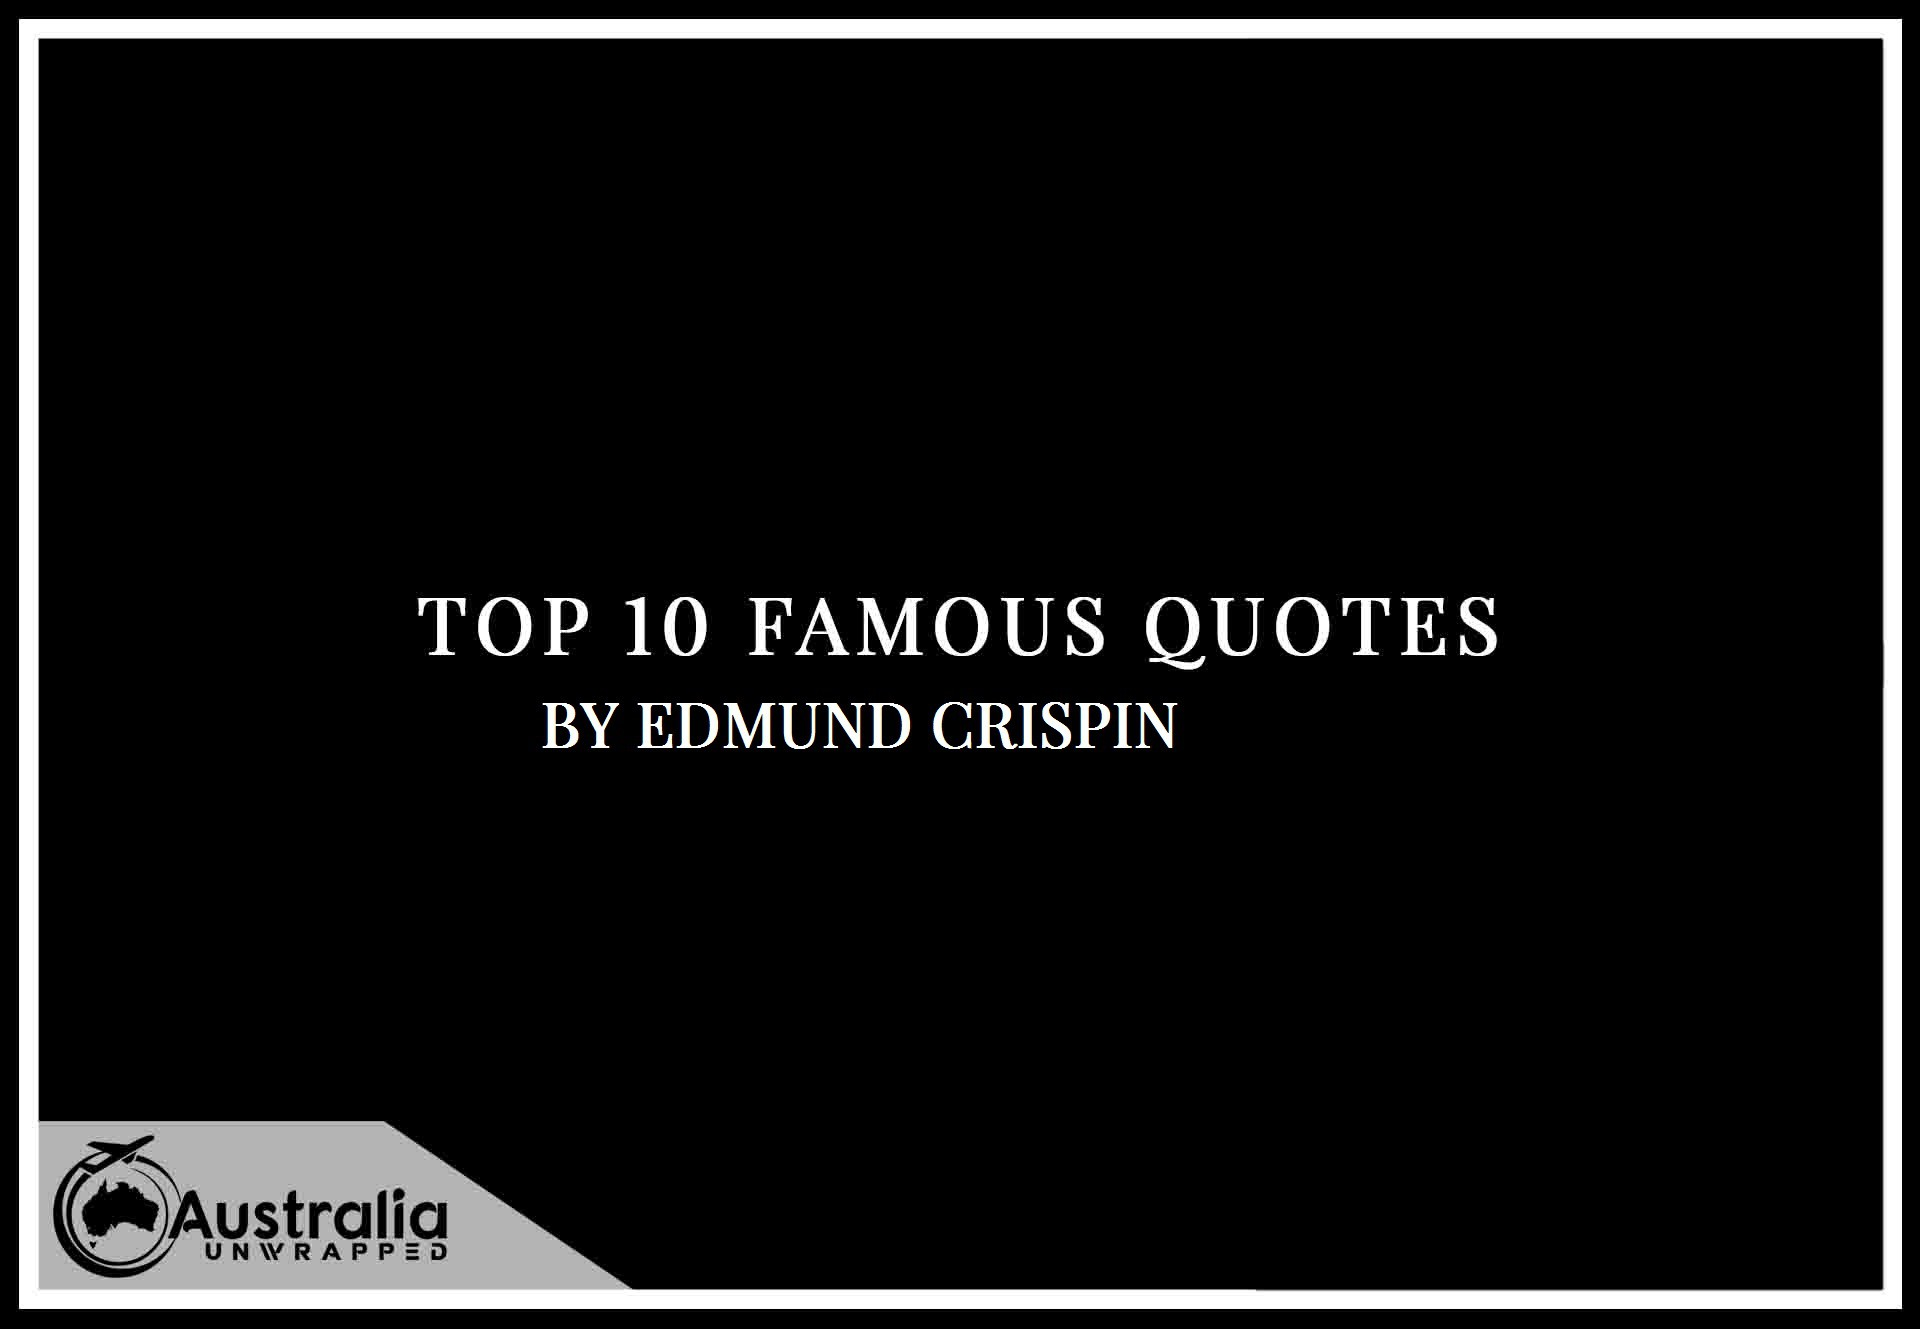 Edmund Crispin's Top 10 Popular and Famous Quotes